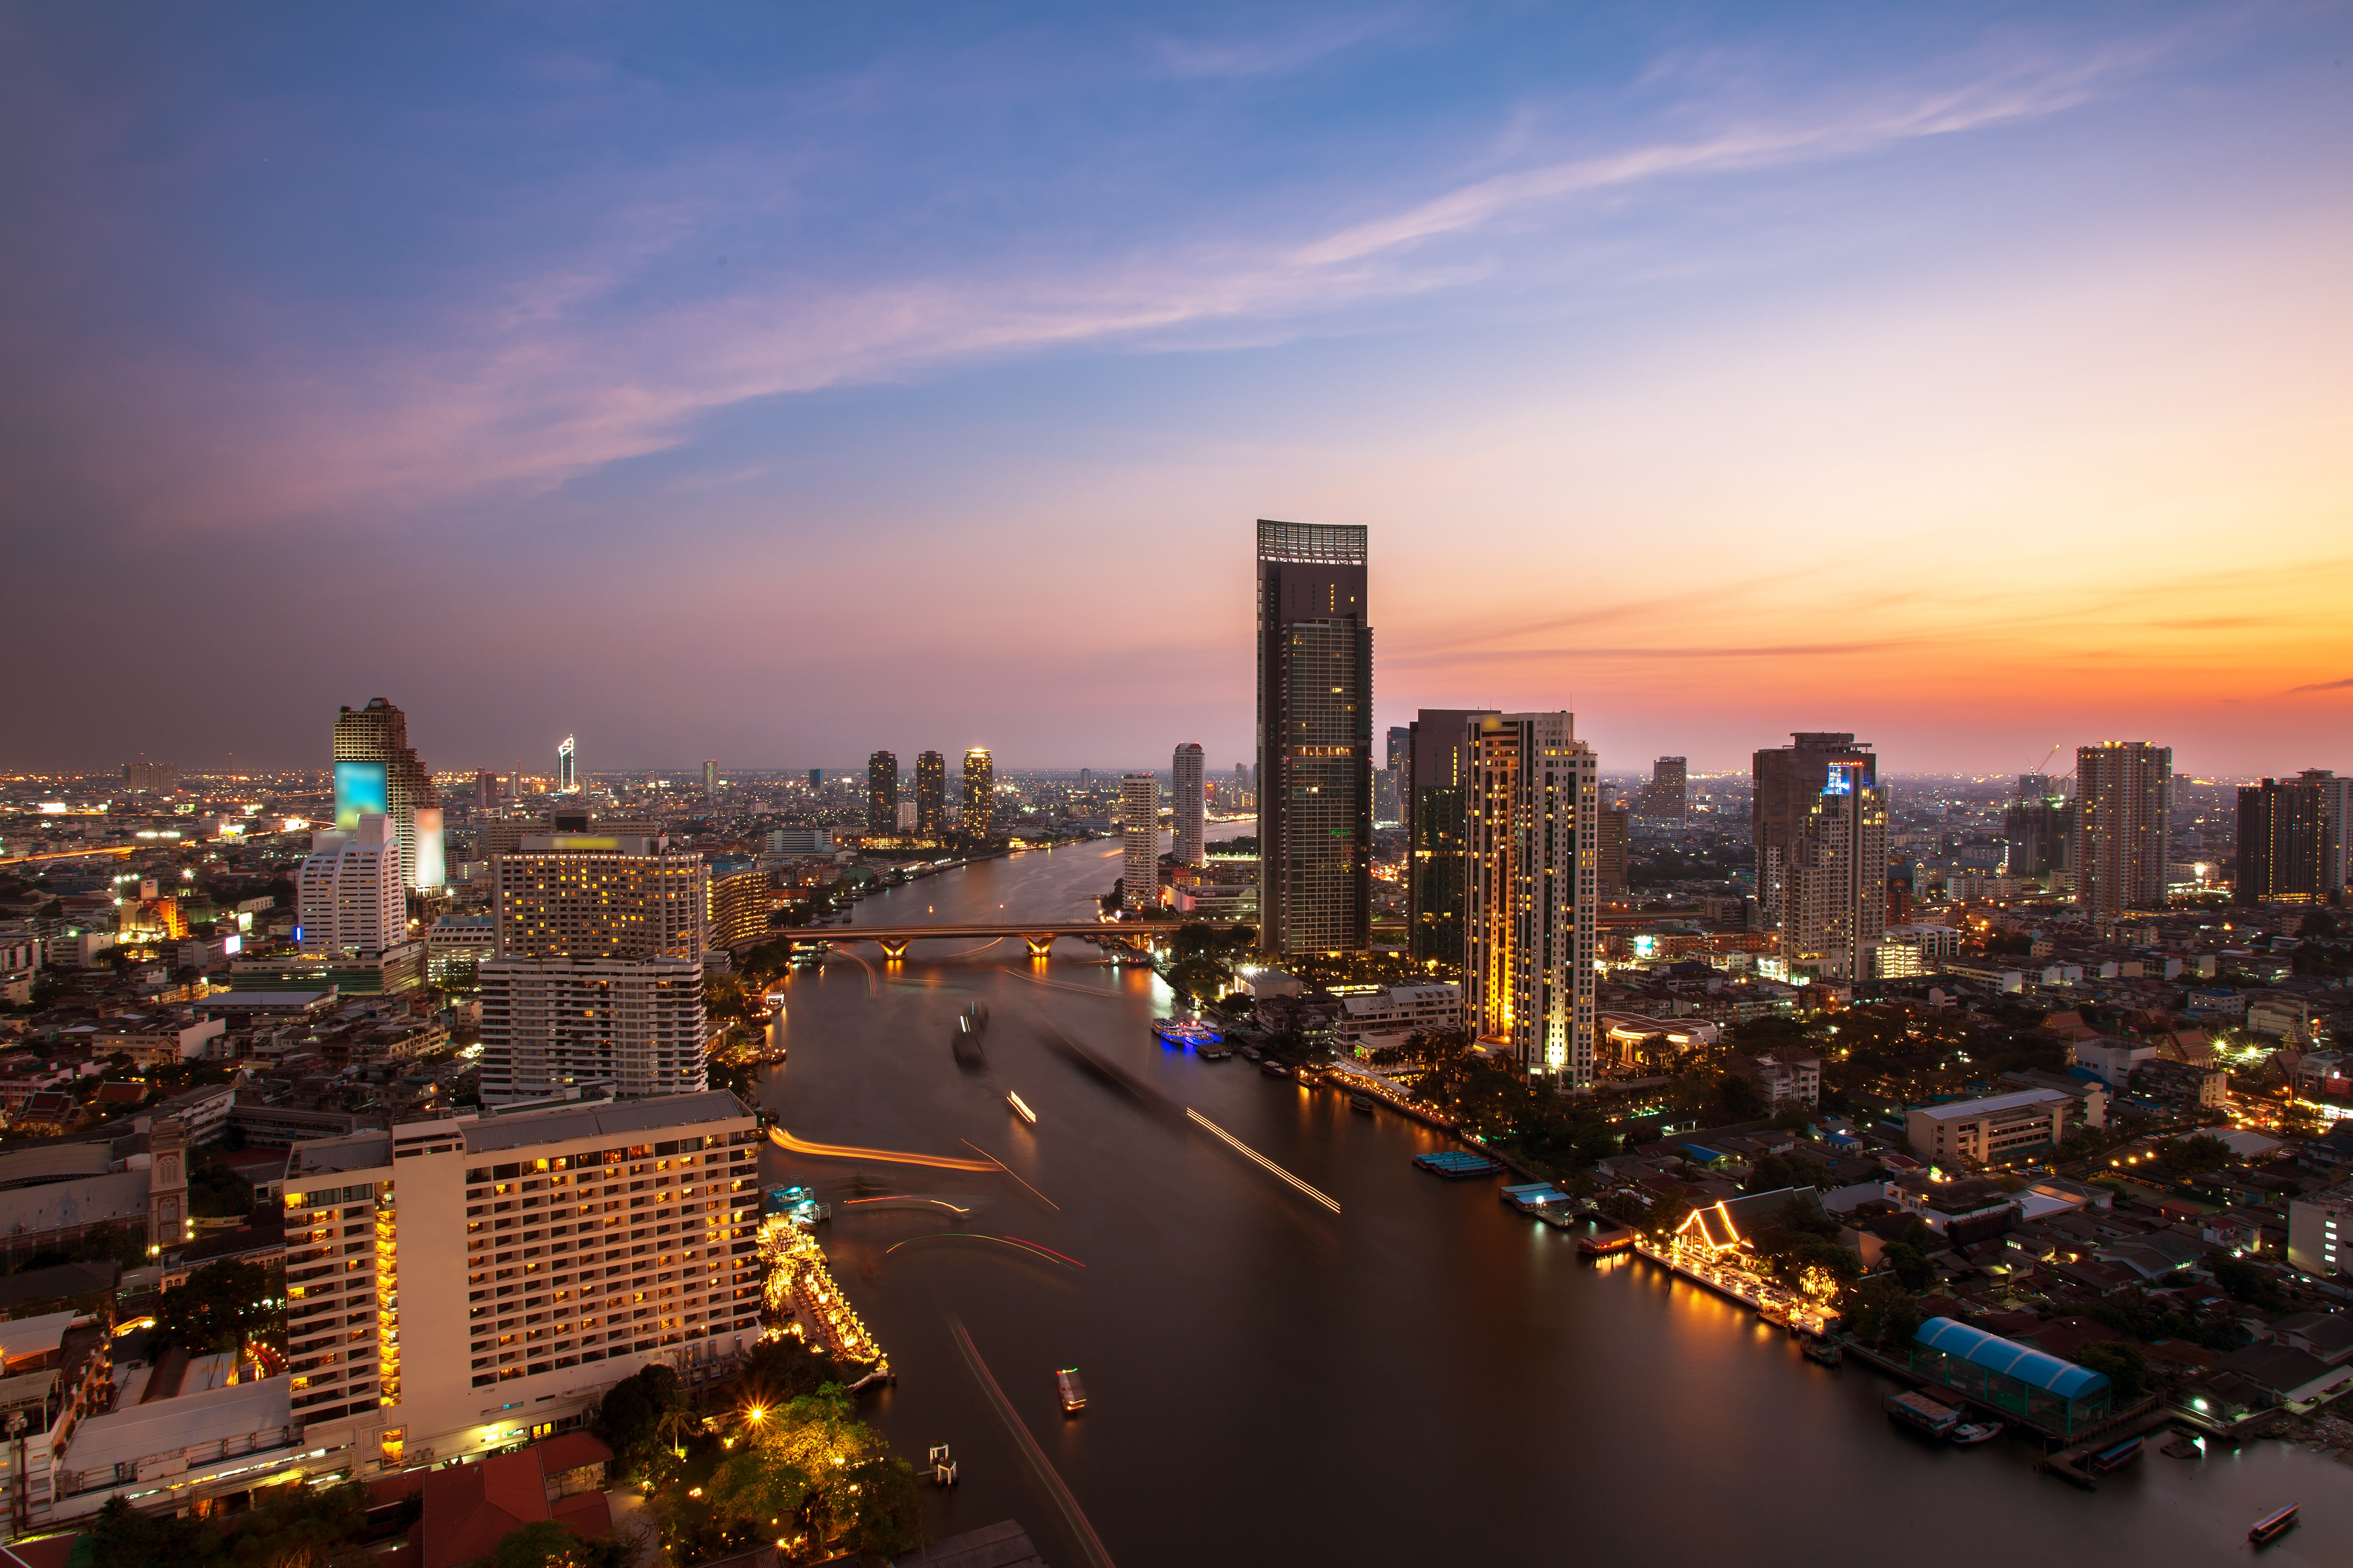 Live Show & Night View: White Orchid Dinner Cruise on Chao Phraya River